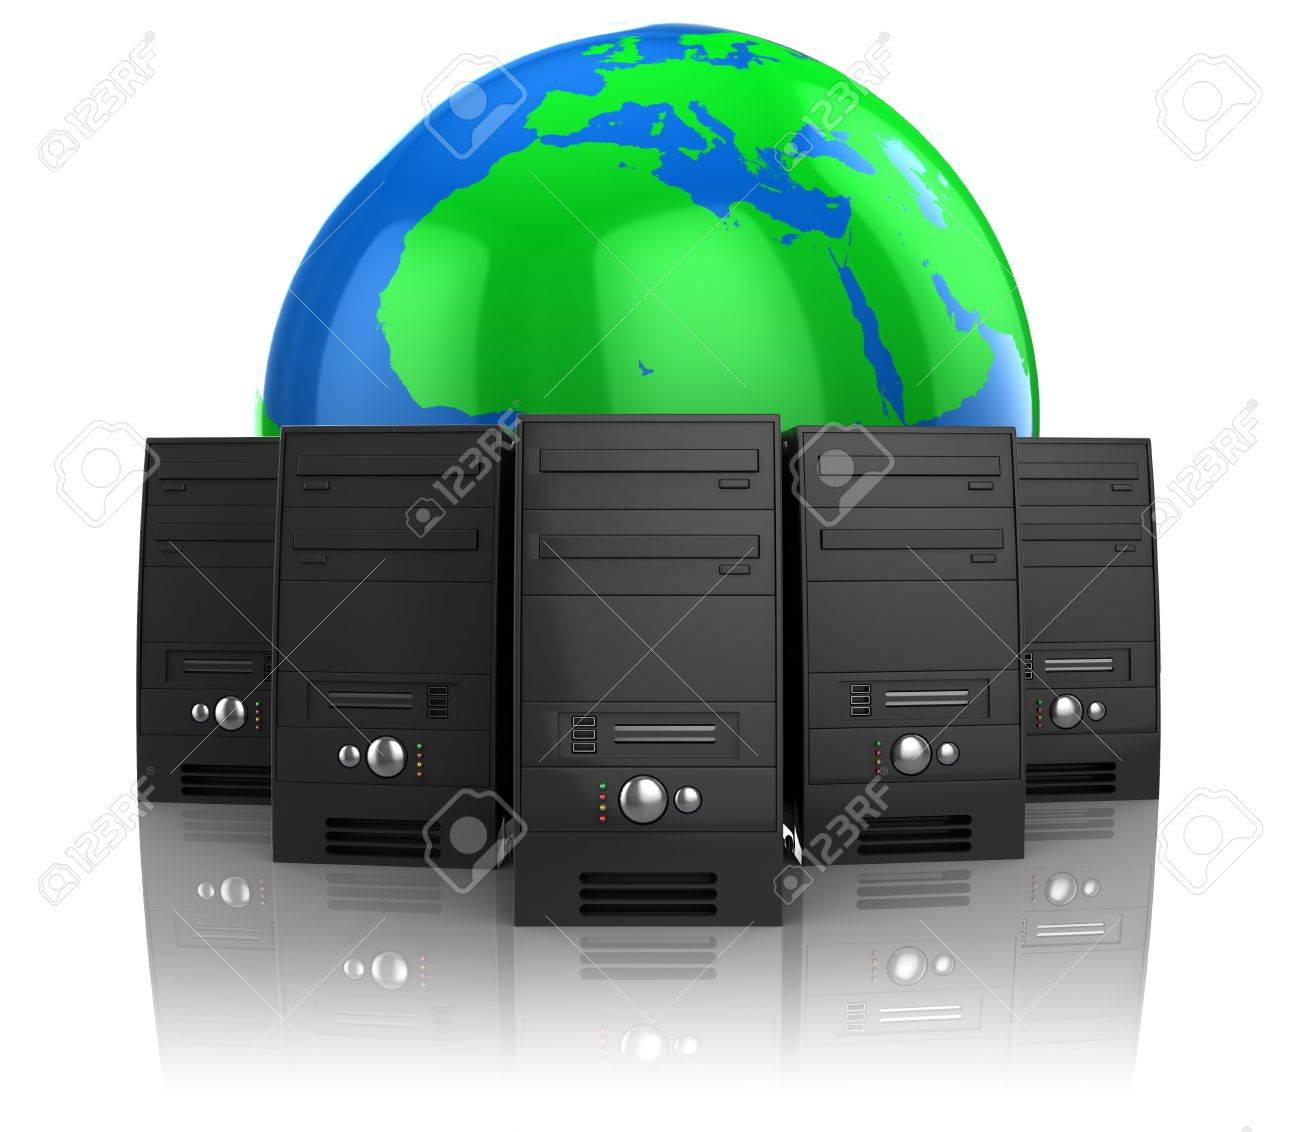 3d illustration of internet servers and earth globe, web hosting concept Stock Photo - 9518799